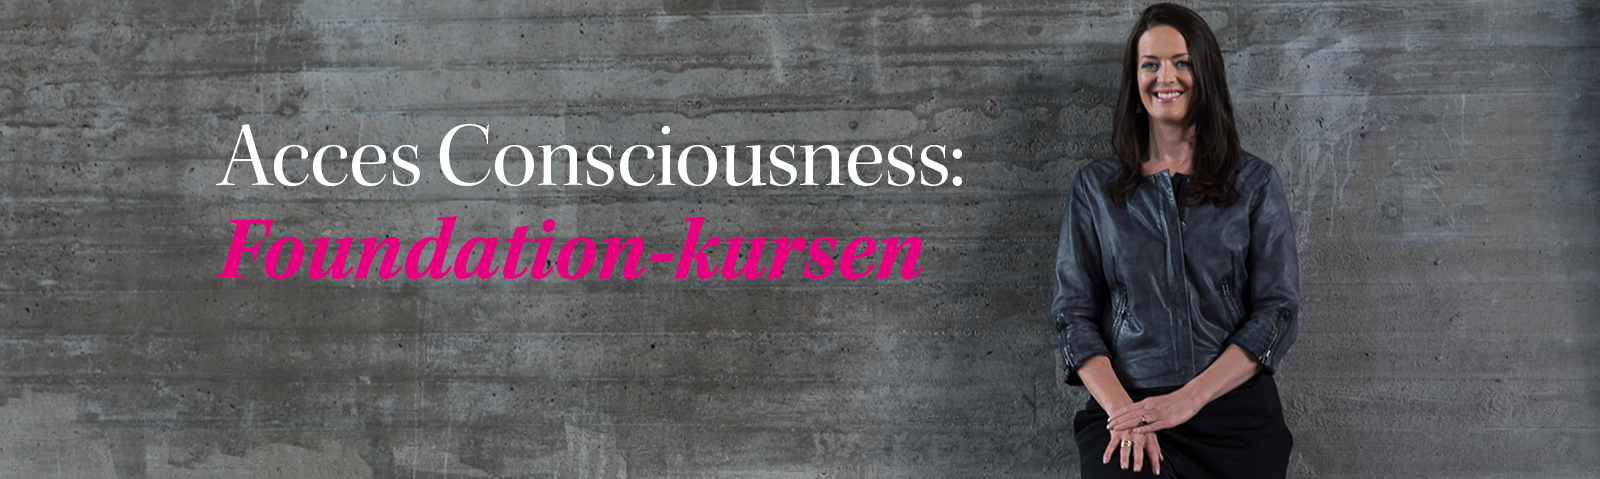 Access Consciousness Foundation-kurs